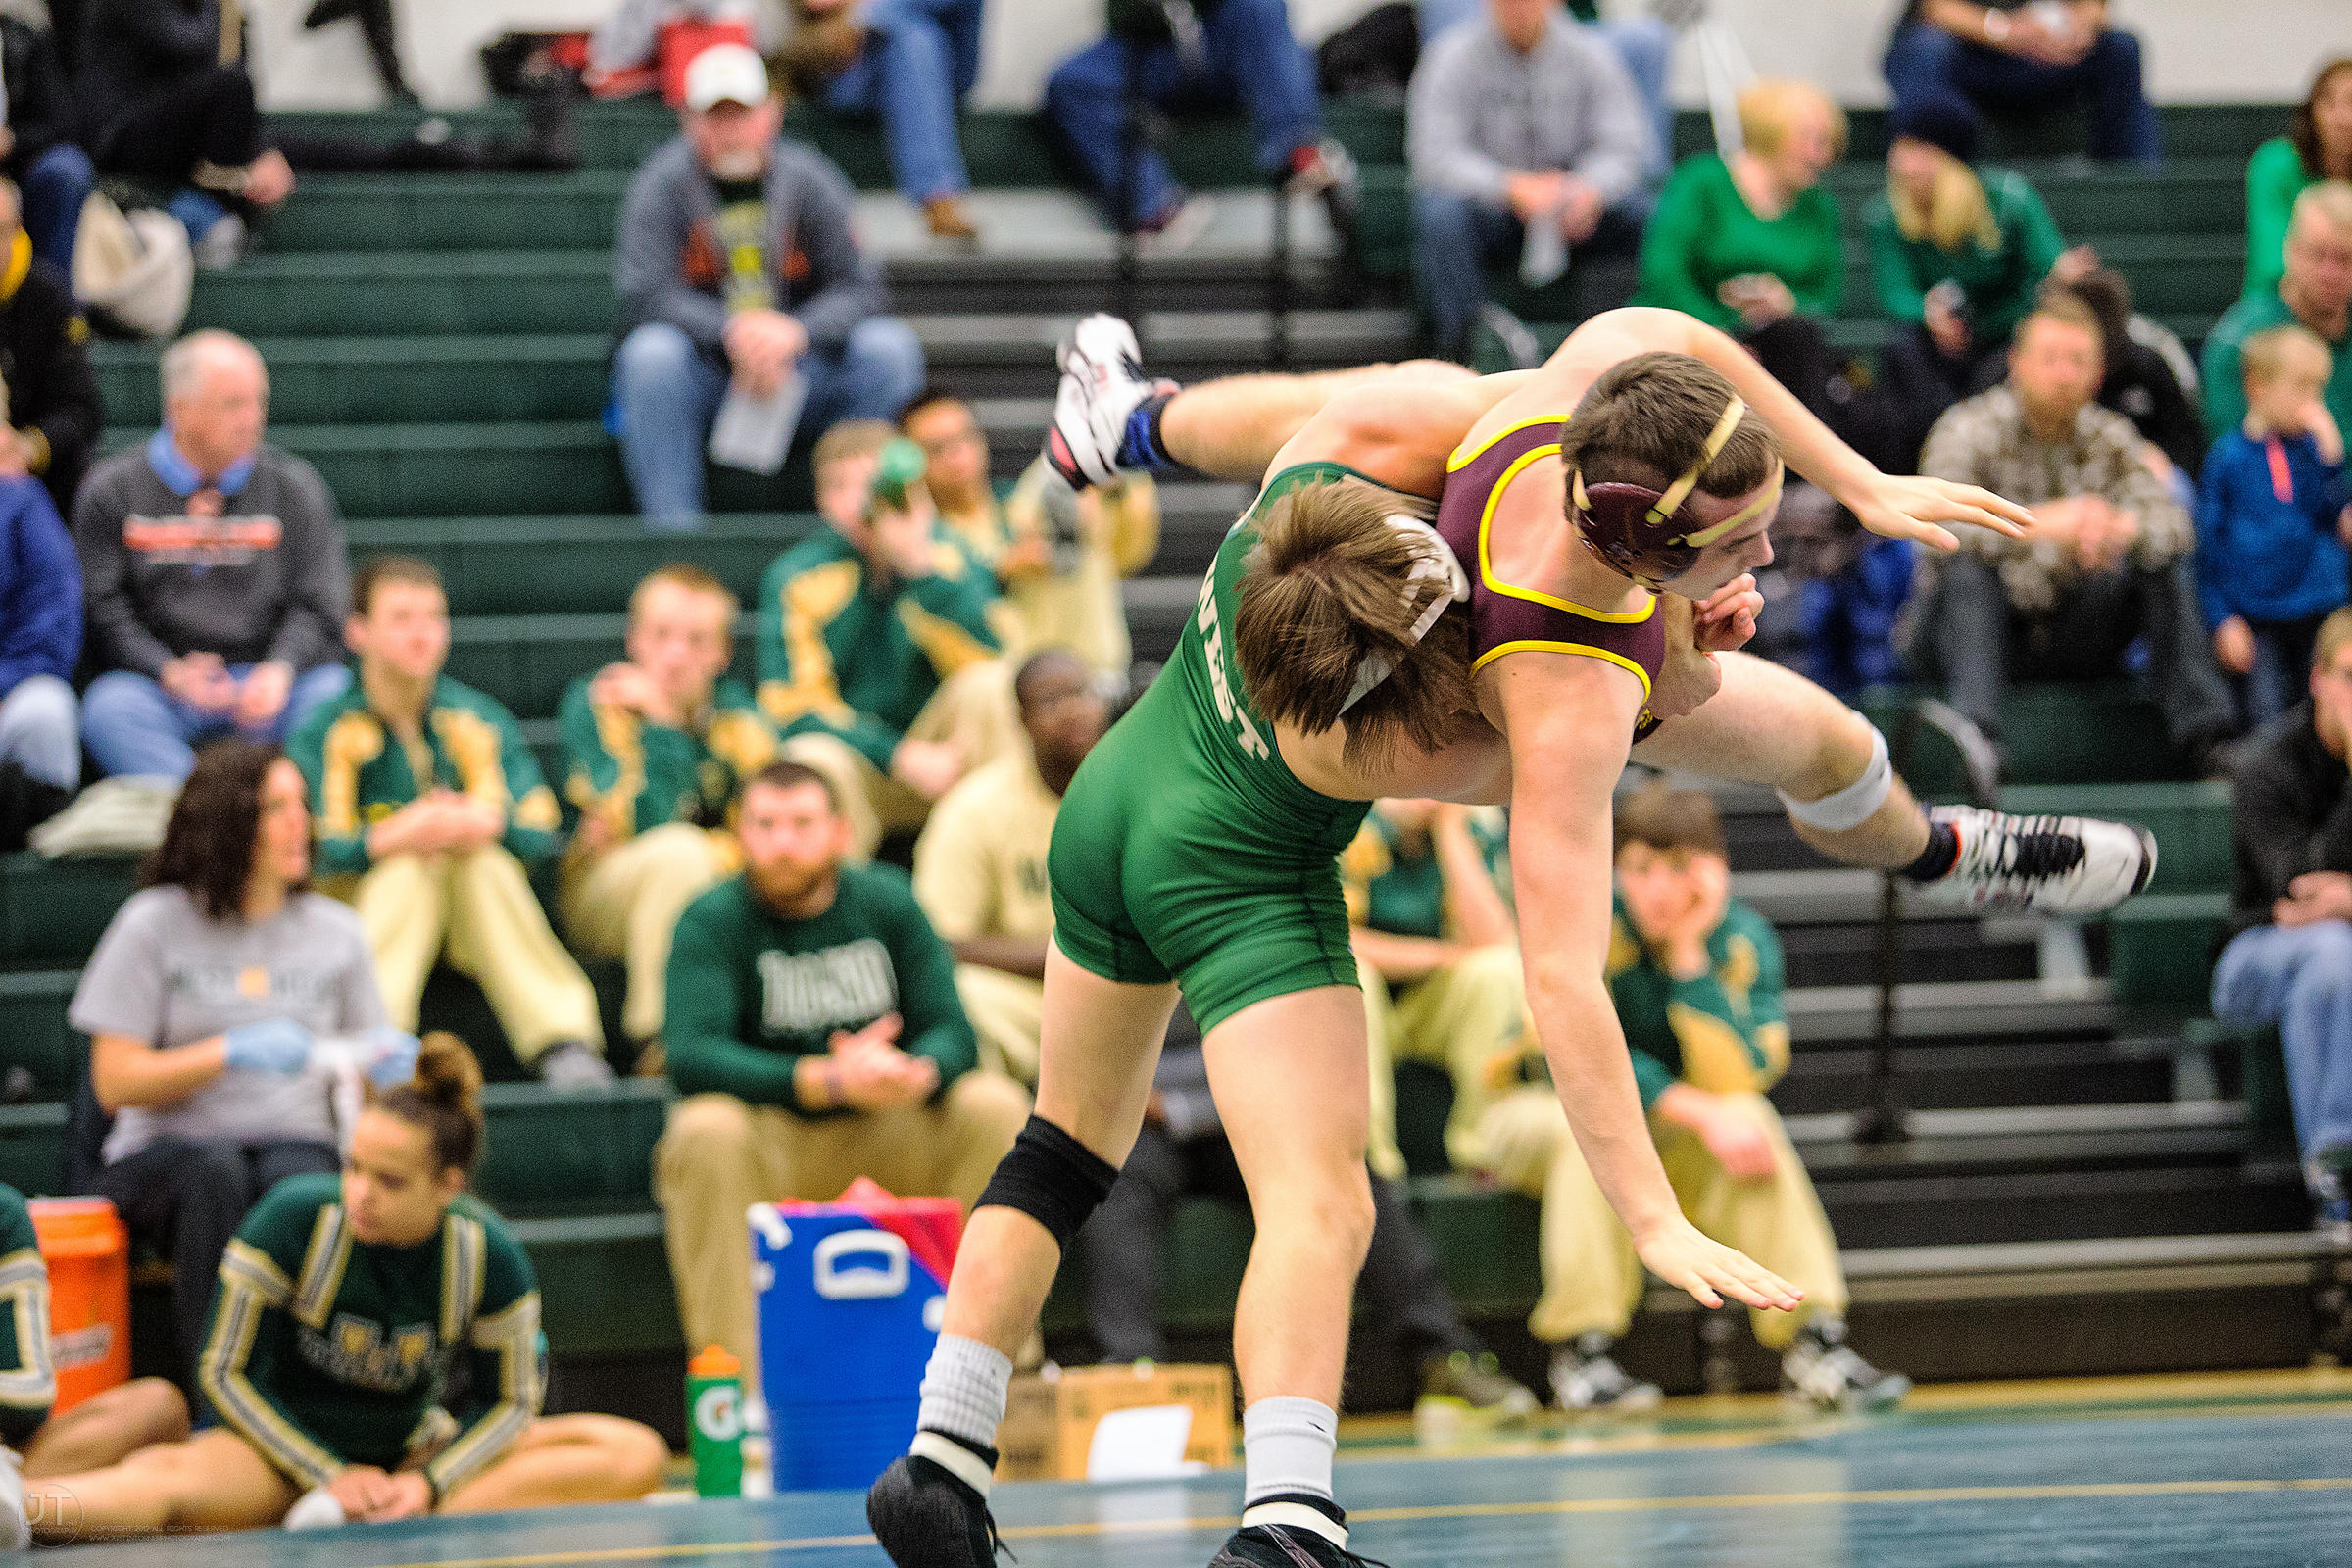 PC - 23rd Annual IC West Lepic Duals, January 10, 2015